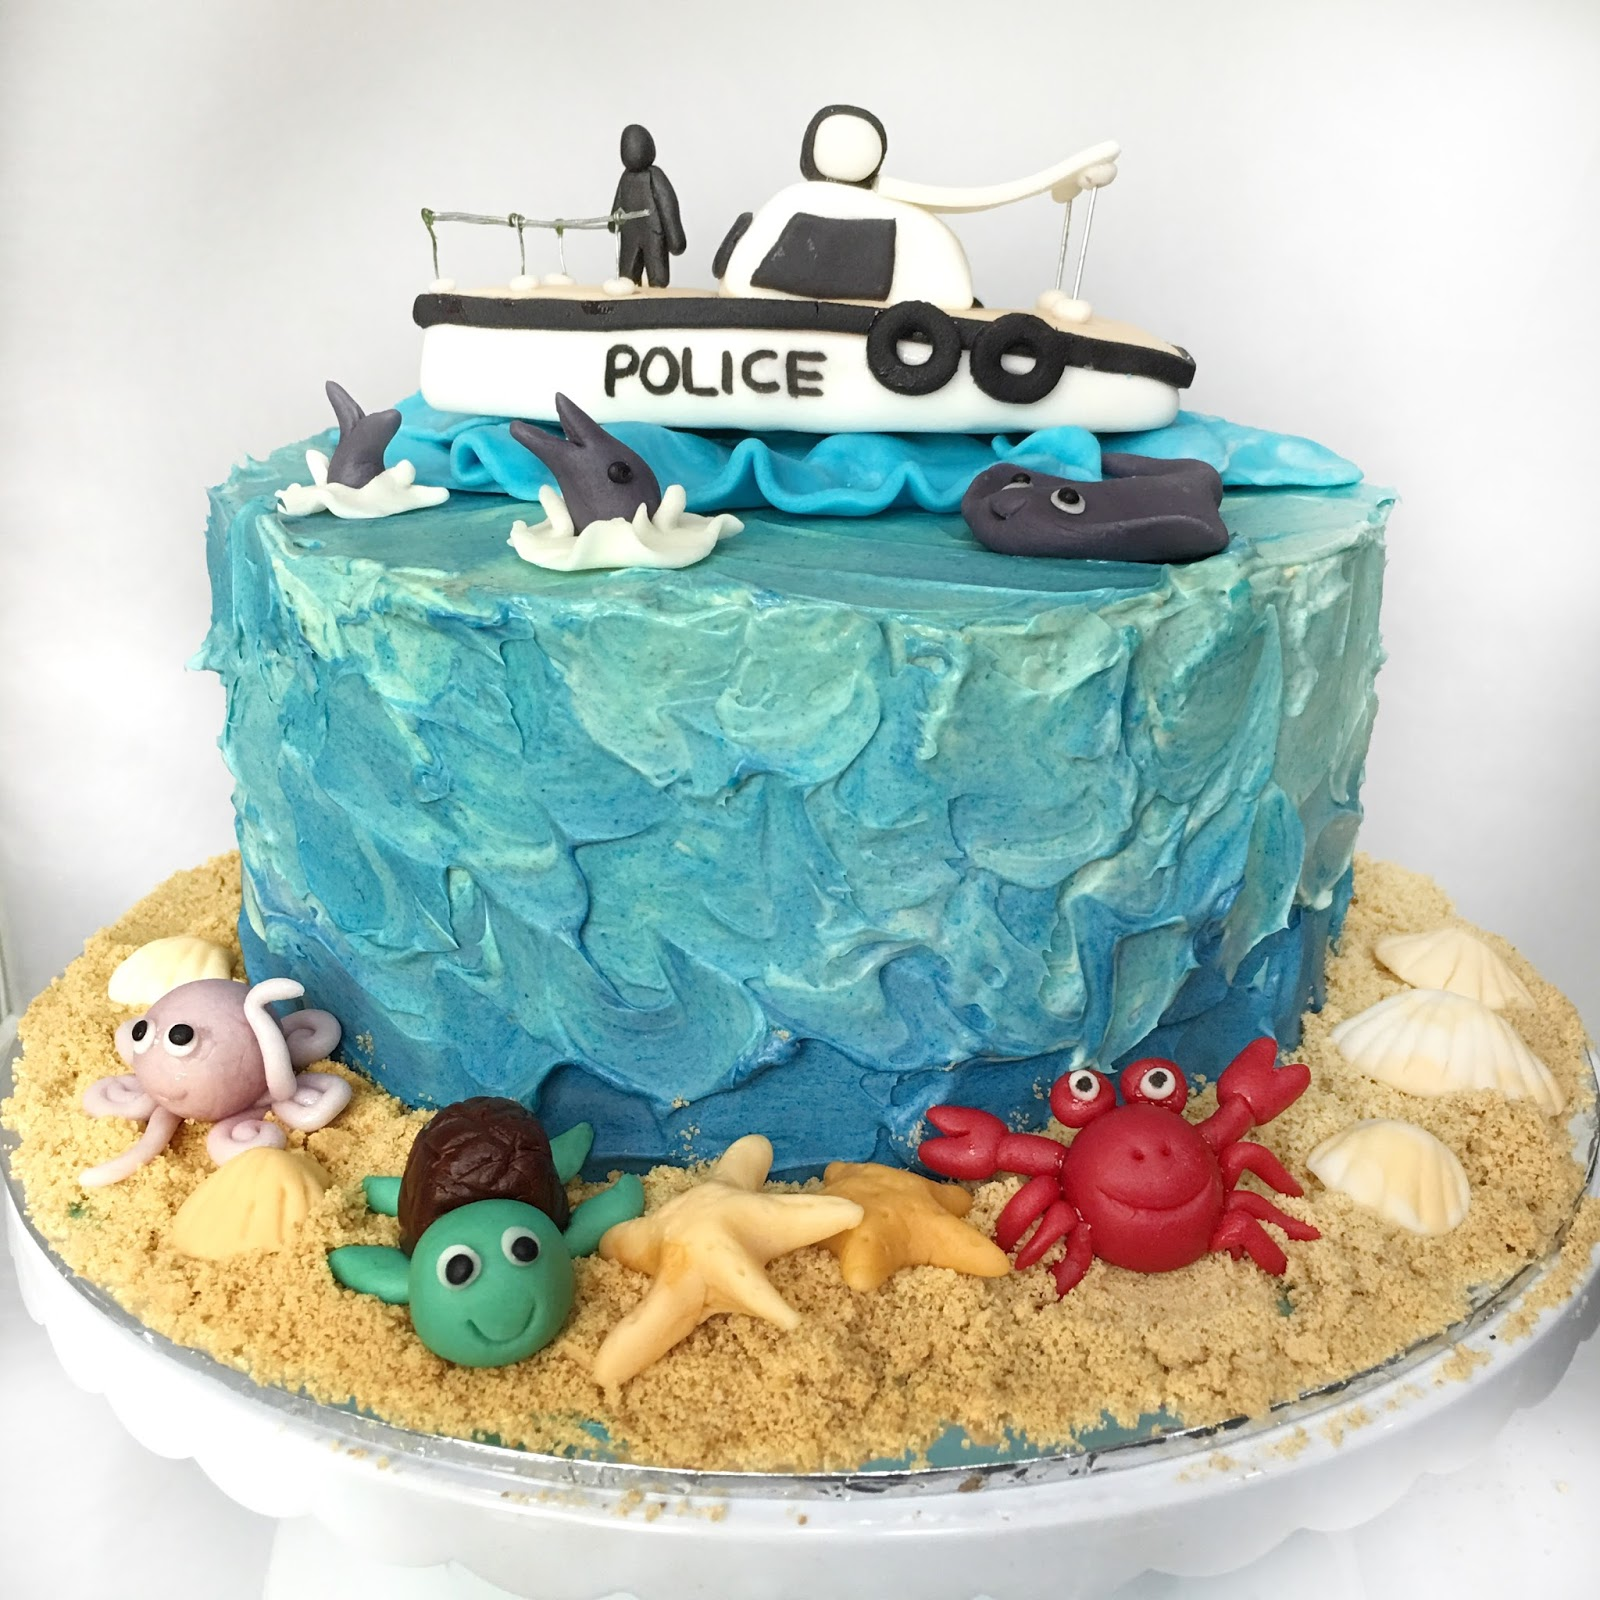 Soaking Up The Sun With A Ocean Themed Cake Police Boat For Nats Birthday They Didnt Want Fondant Wrapped So I Use Vanilla Buttercream